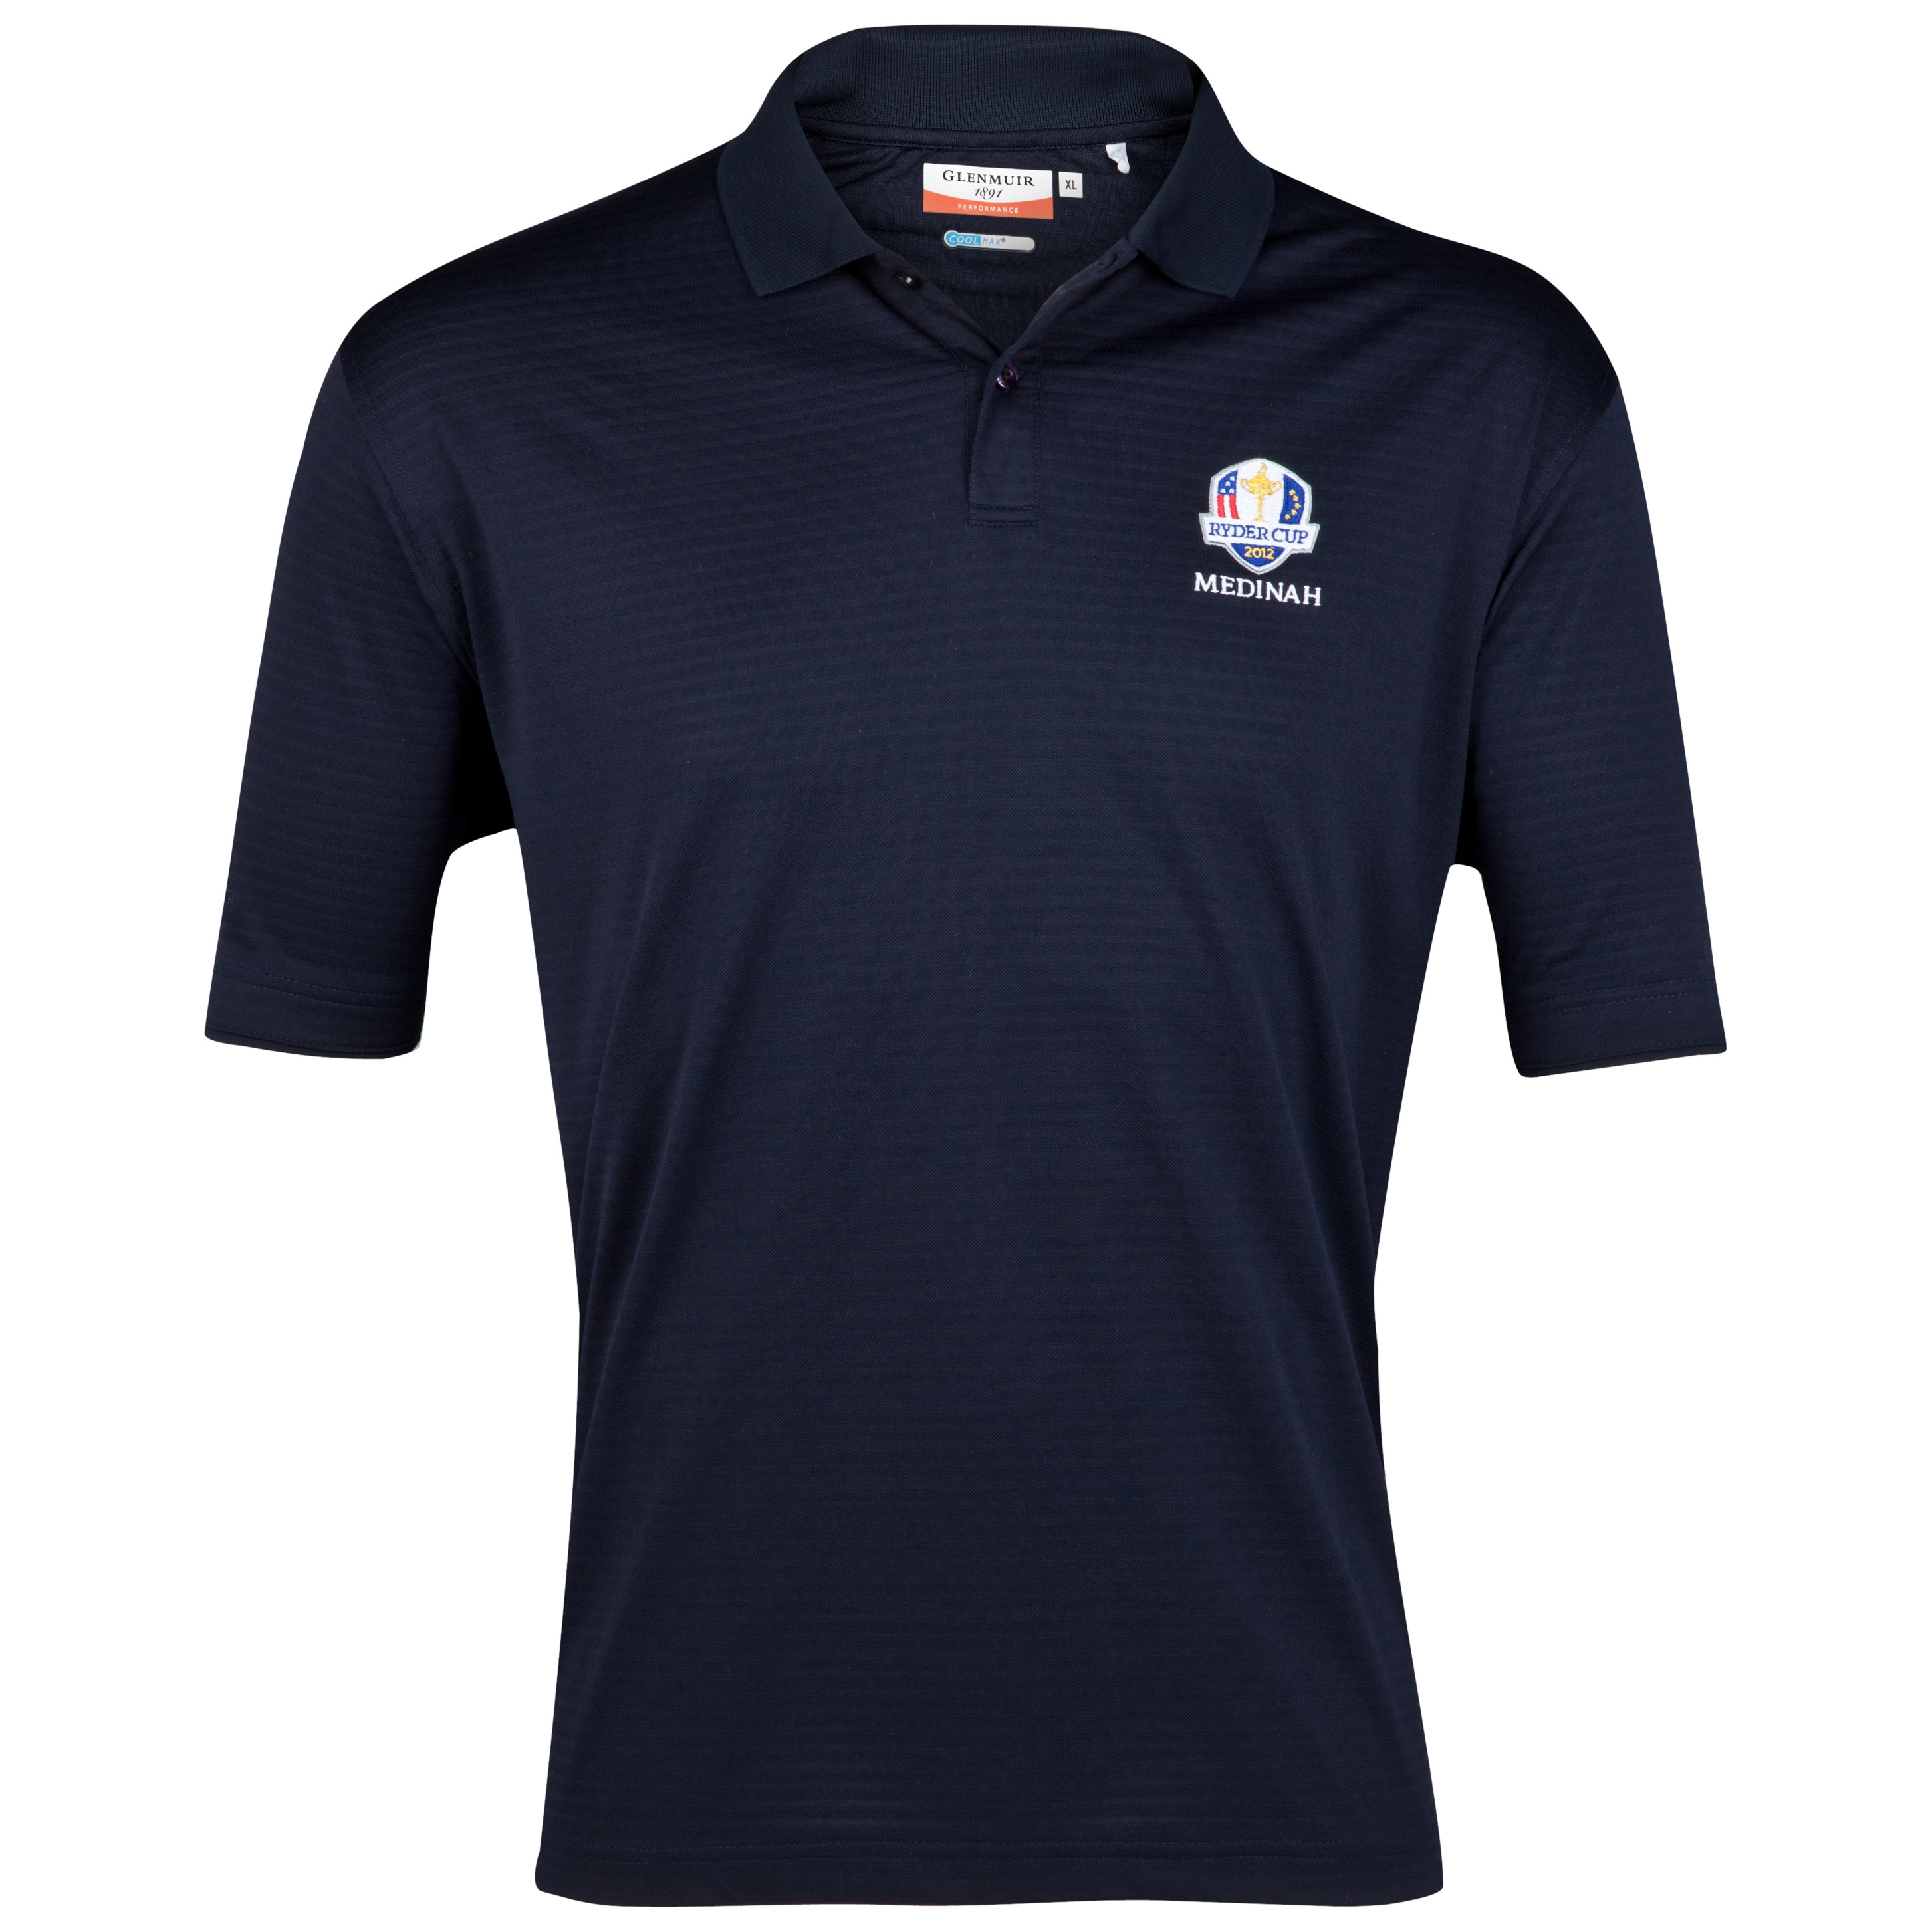 The 2012 Ryder Cup Glenmuir Performance Club Coolmax Polo - Navy